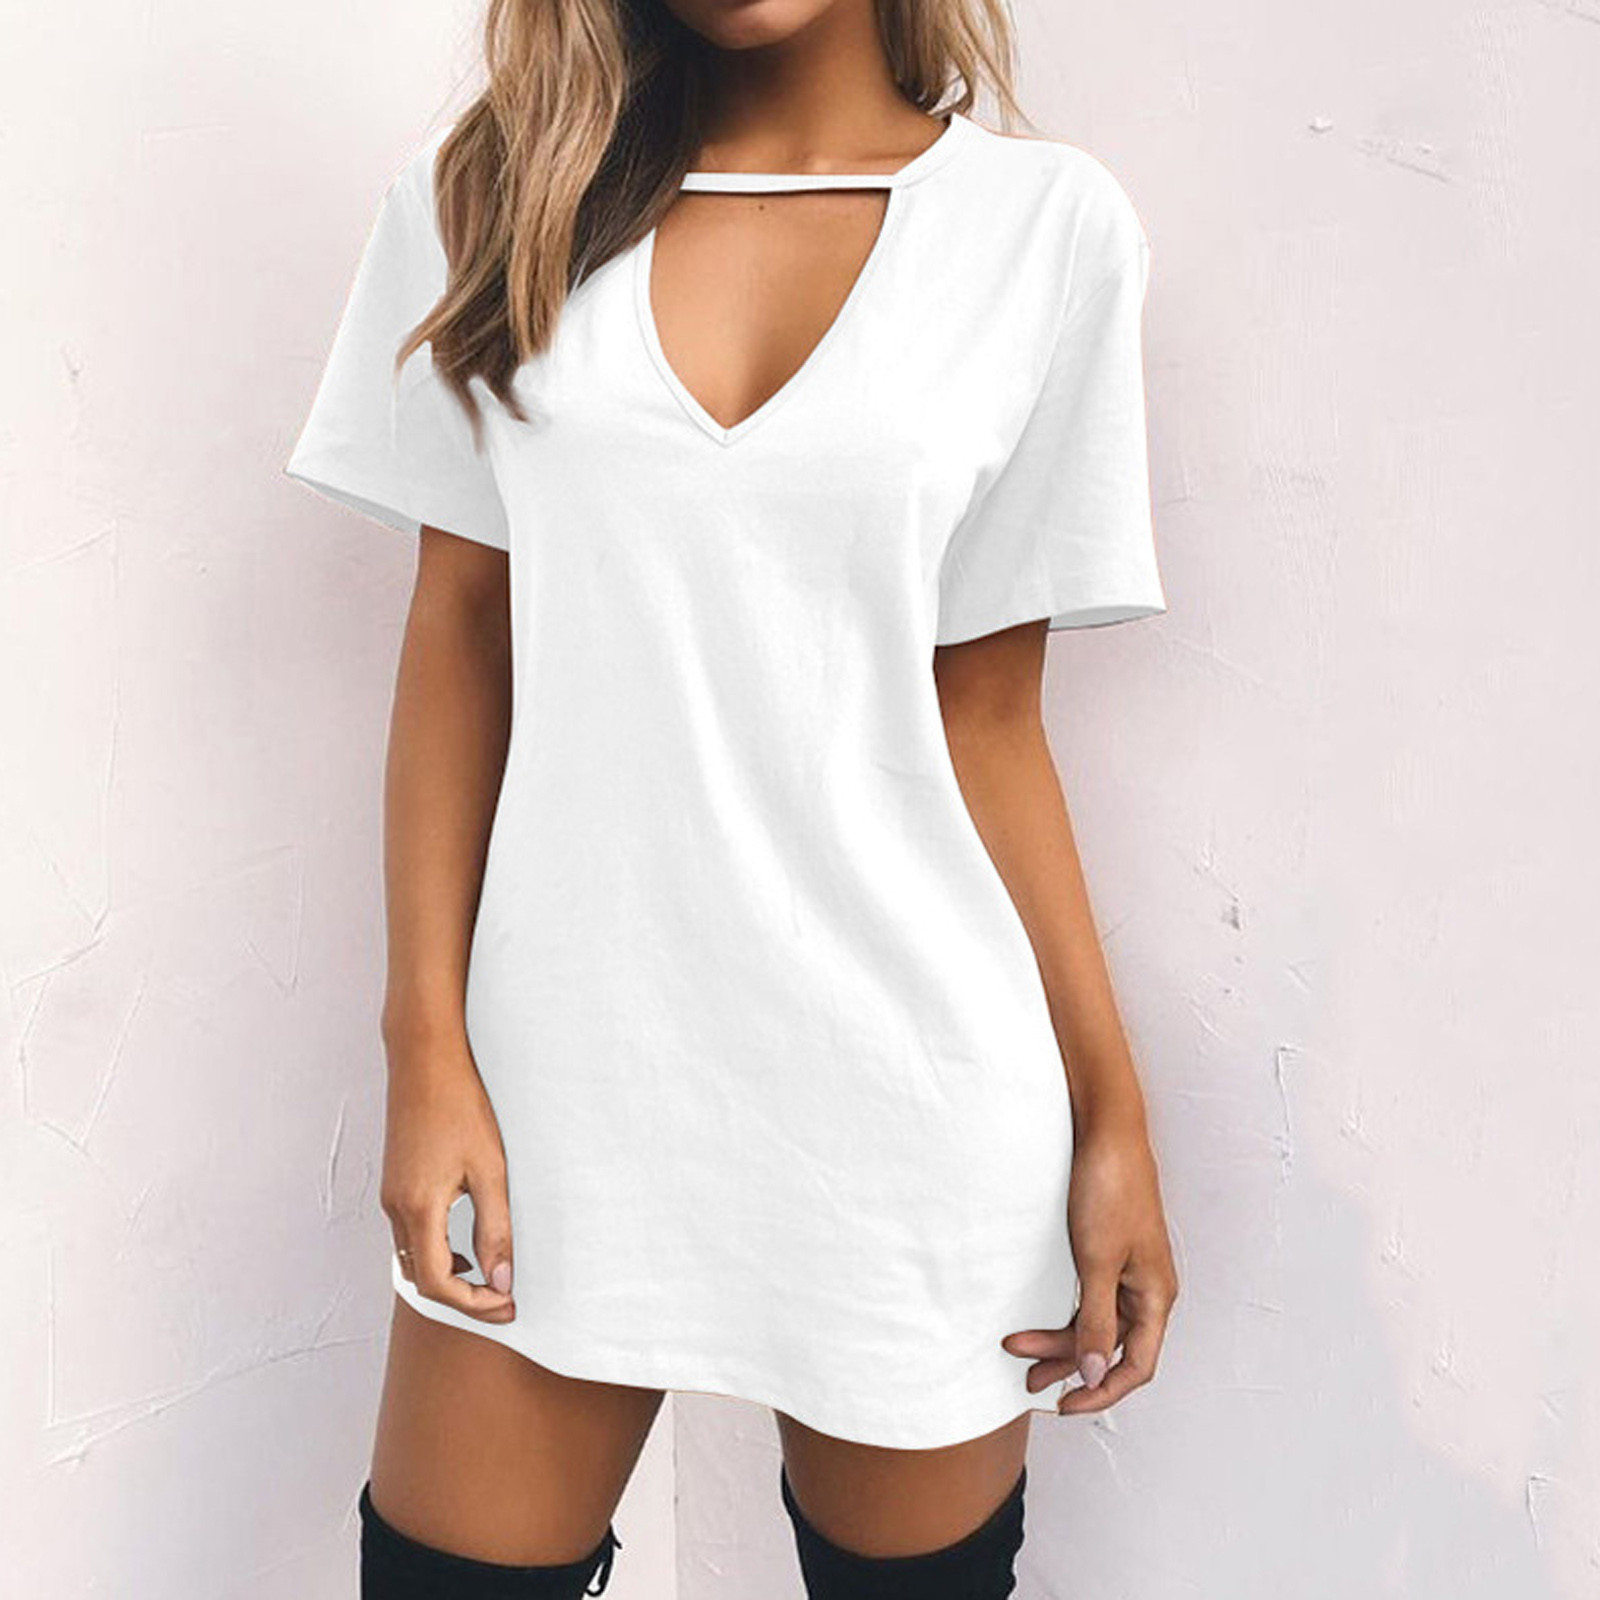 25# Women Casual Hollow Out Mini Dress Short Sleeve V-Neck Solid color Ladies Plus Size streetwear dress Vestido Mujer Femme